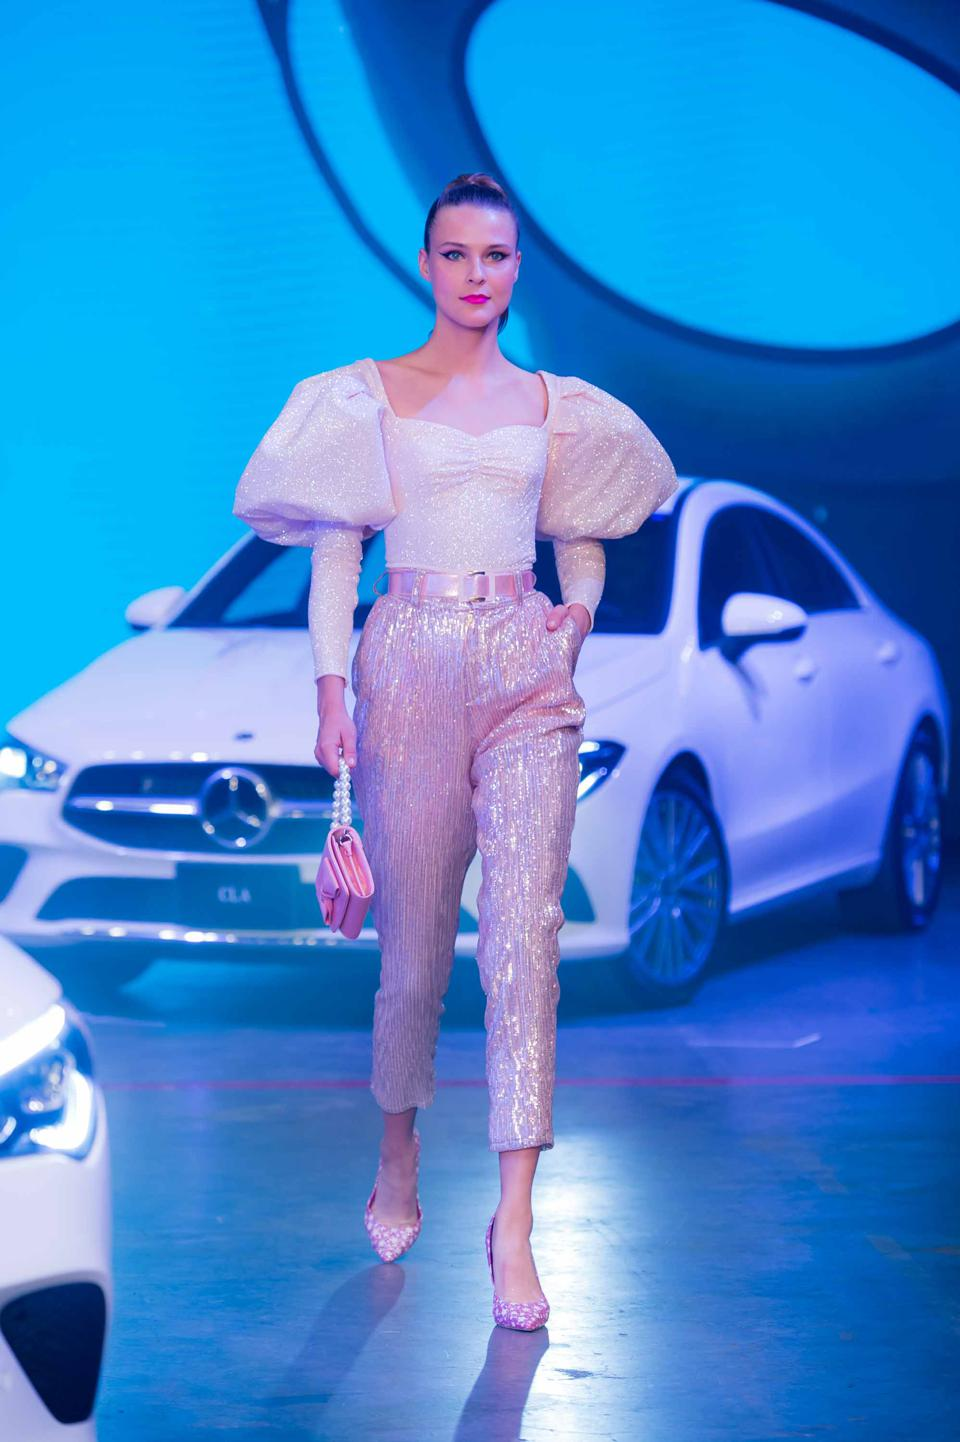 Mercedes Benz sponsored designer: Benito Santos.